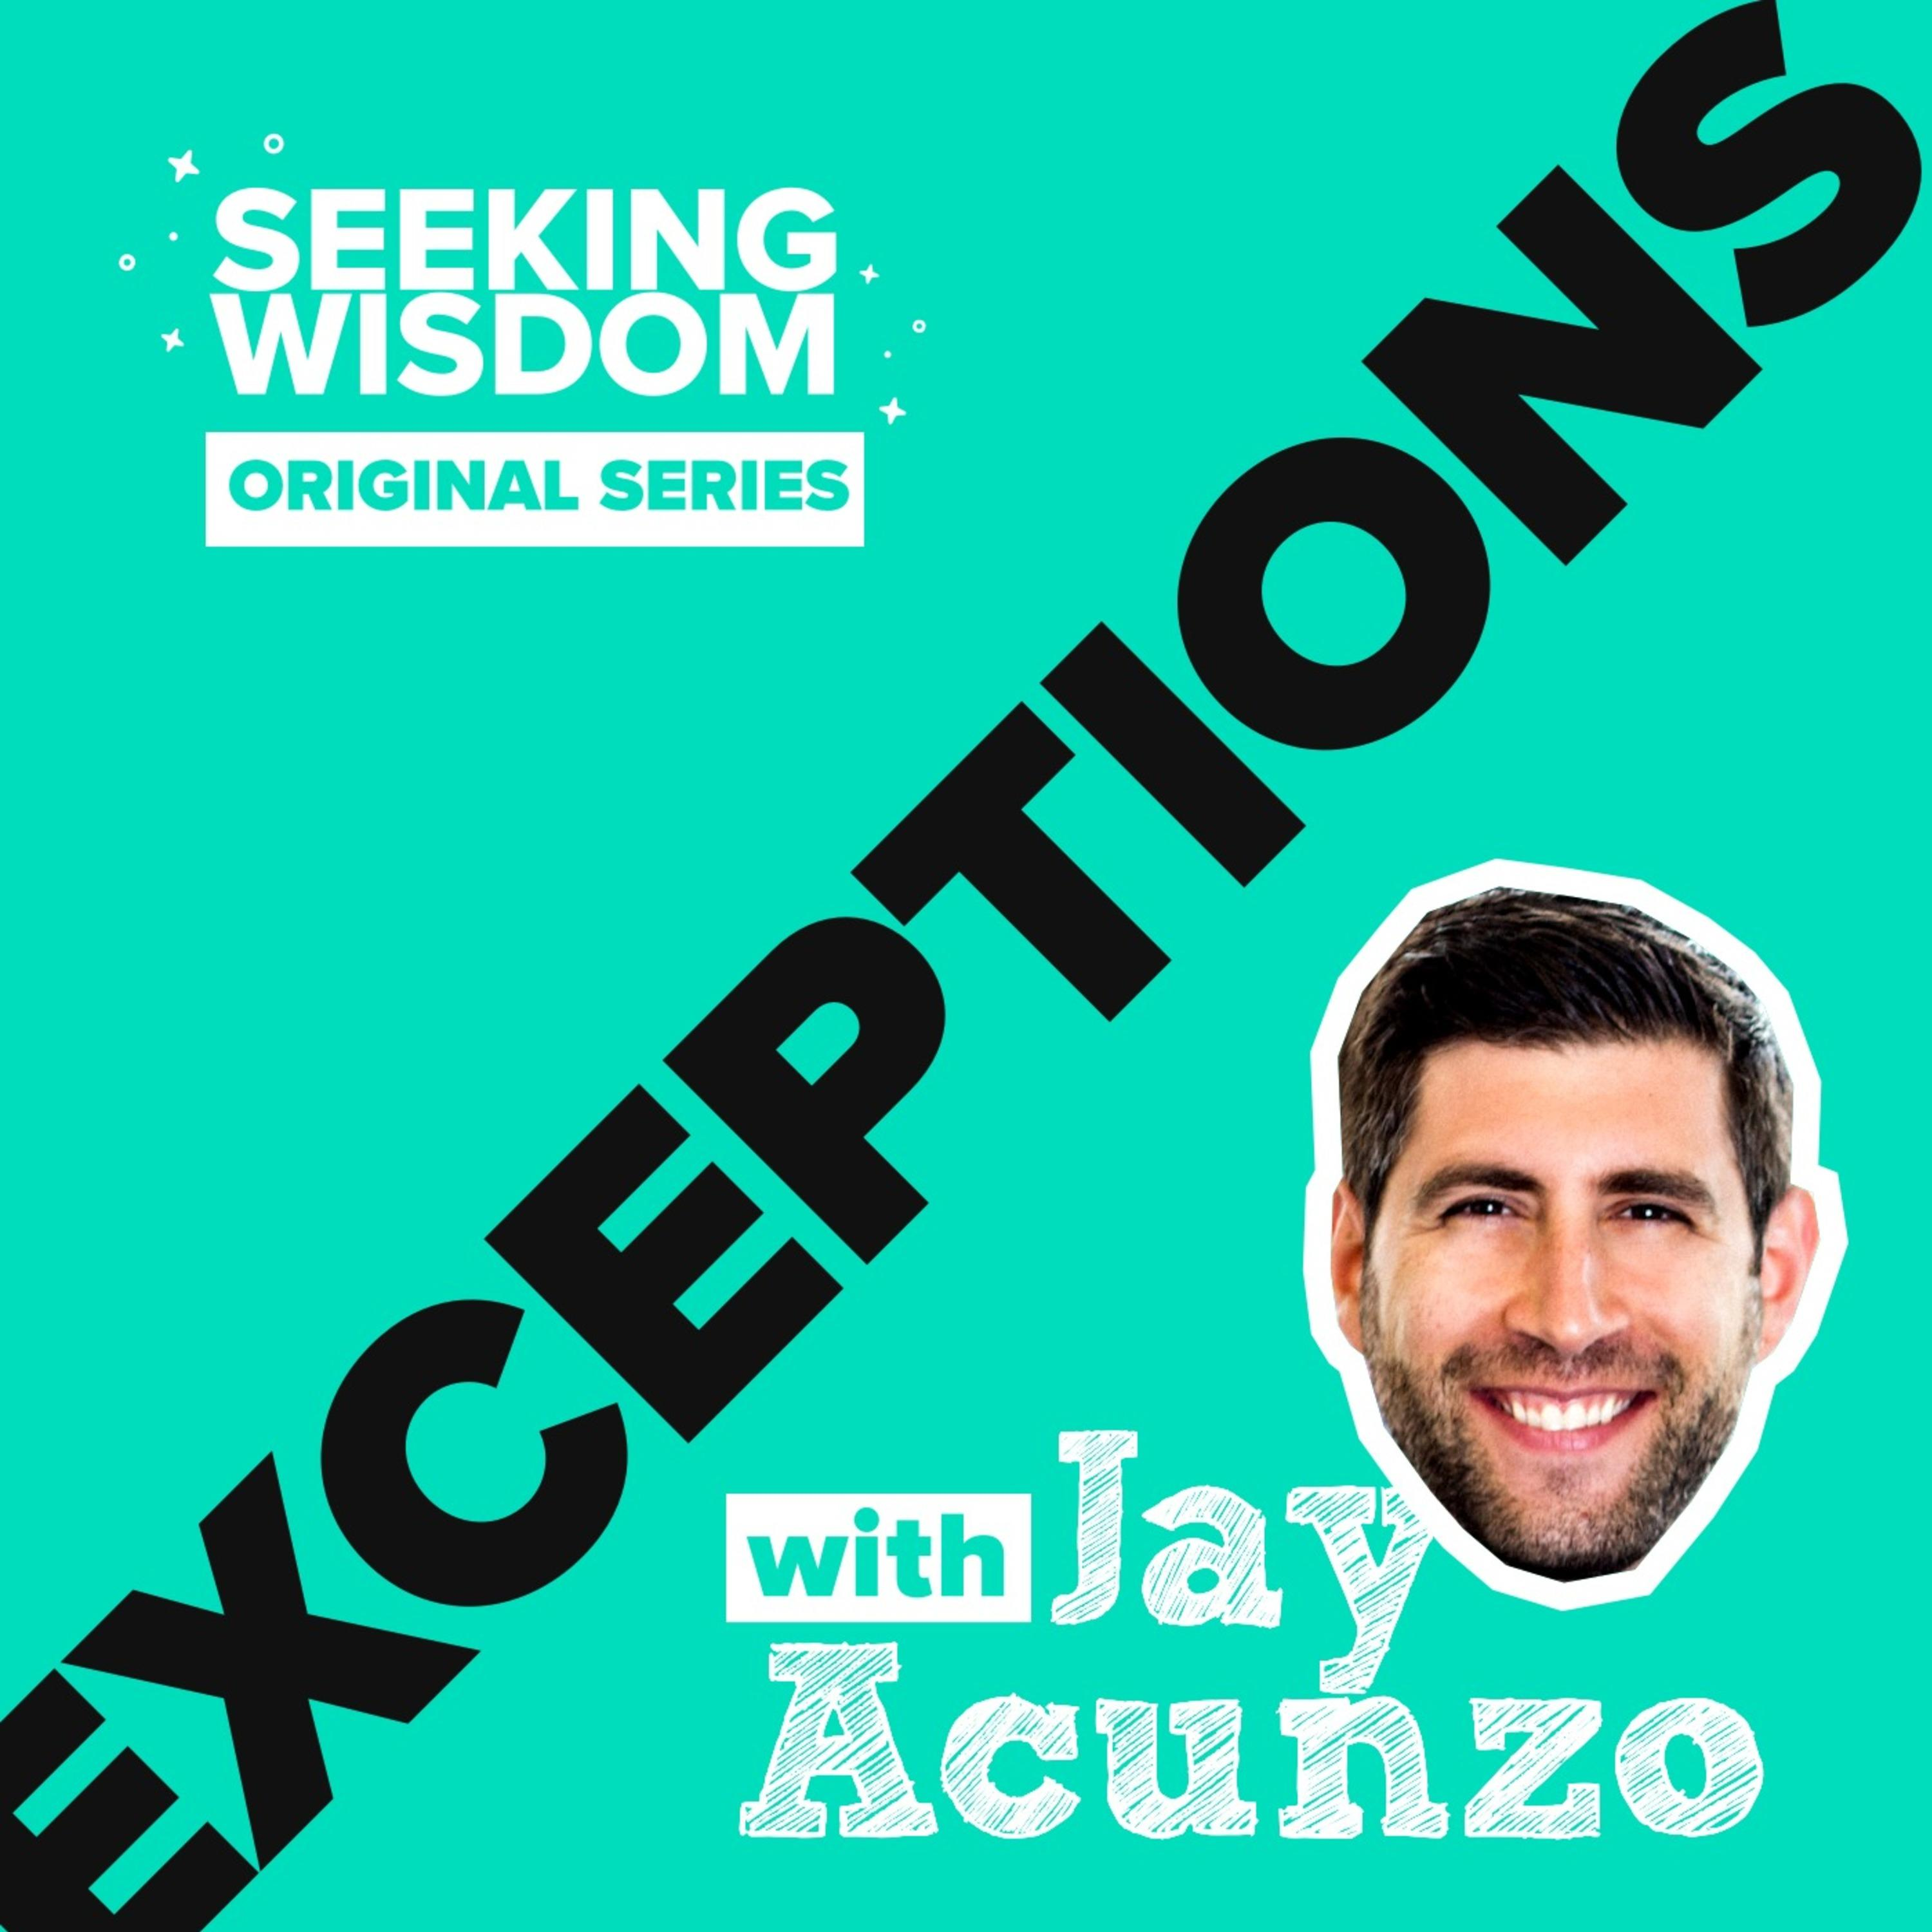 #Exceptions 9: The Most Crucial Leadership Principle Most B2B Brands Miss